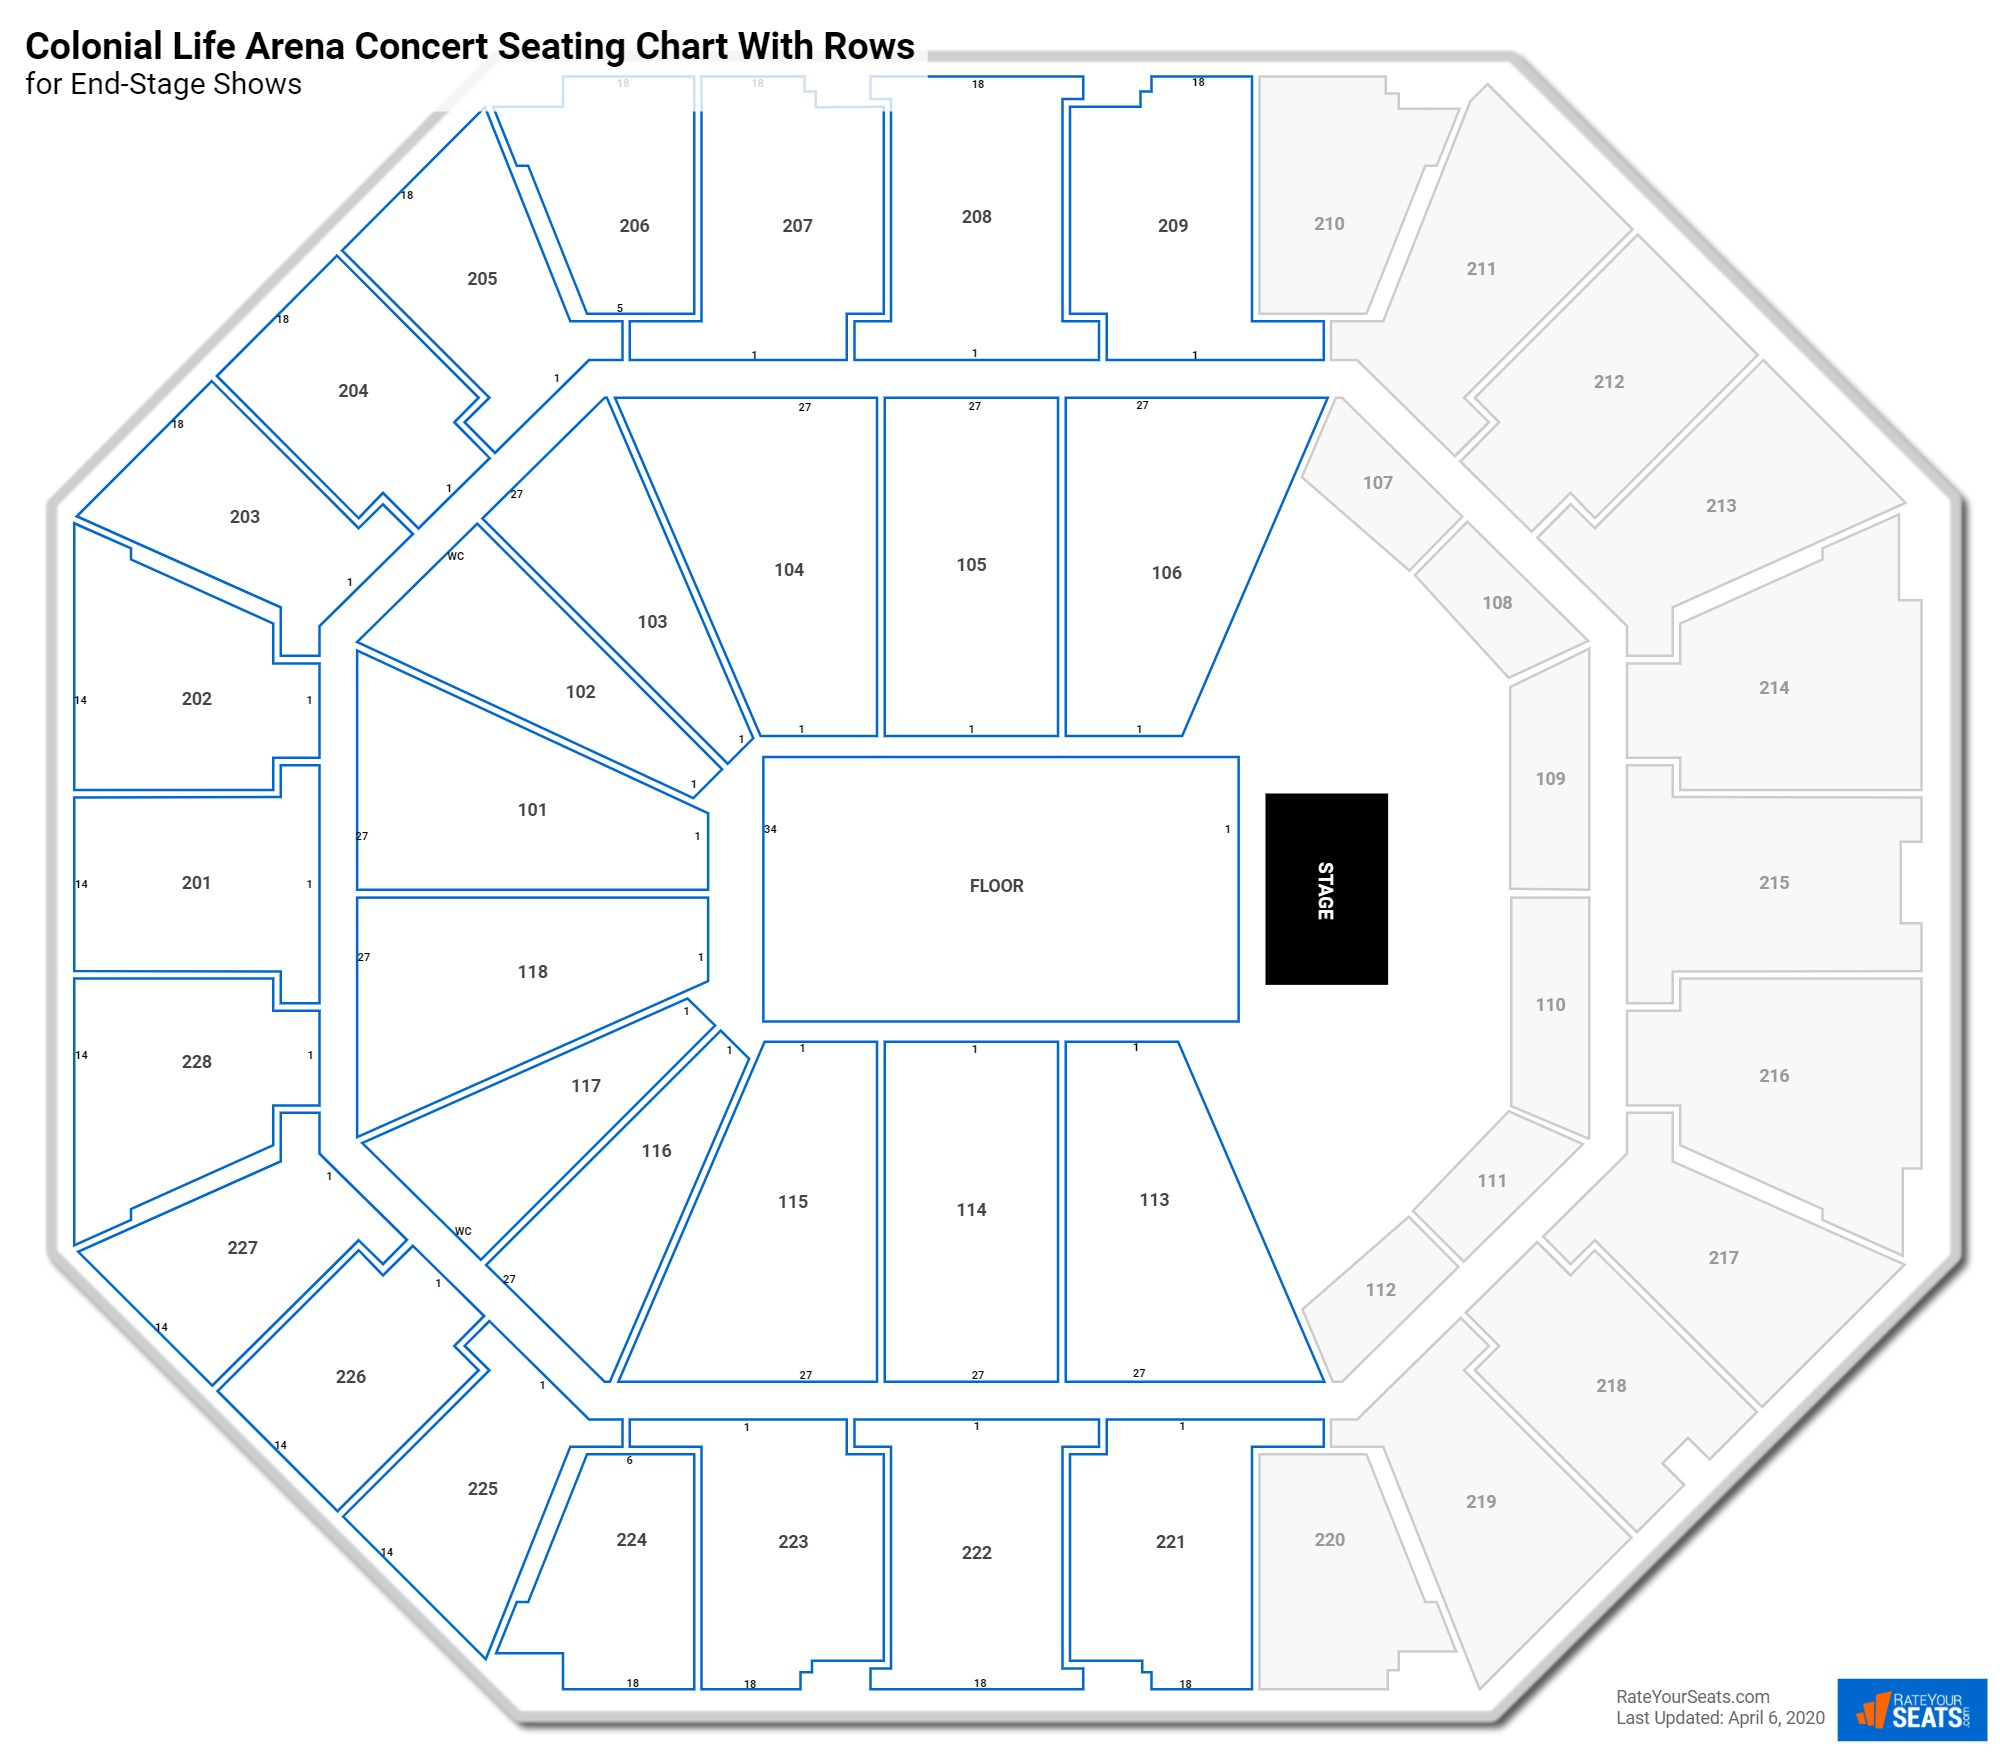 Colonial Life Arena seating chart with rows concert